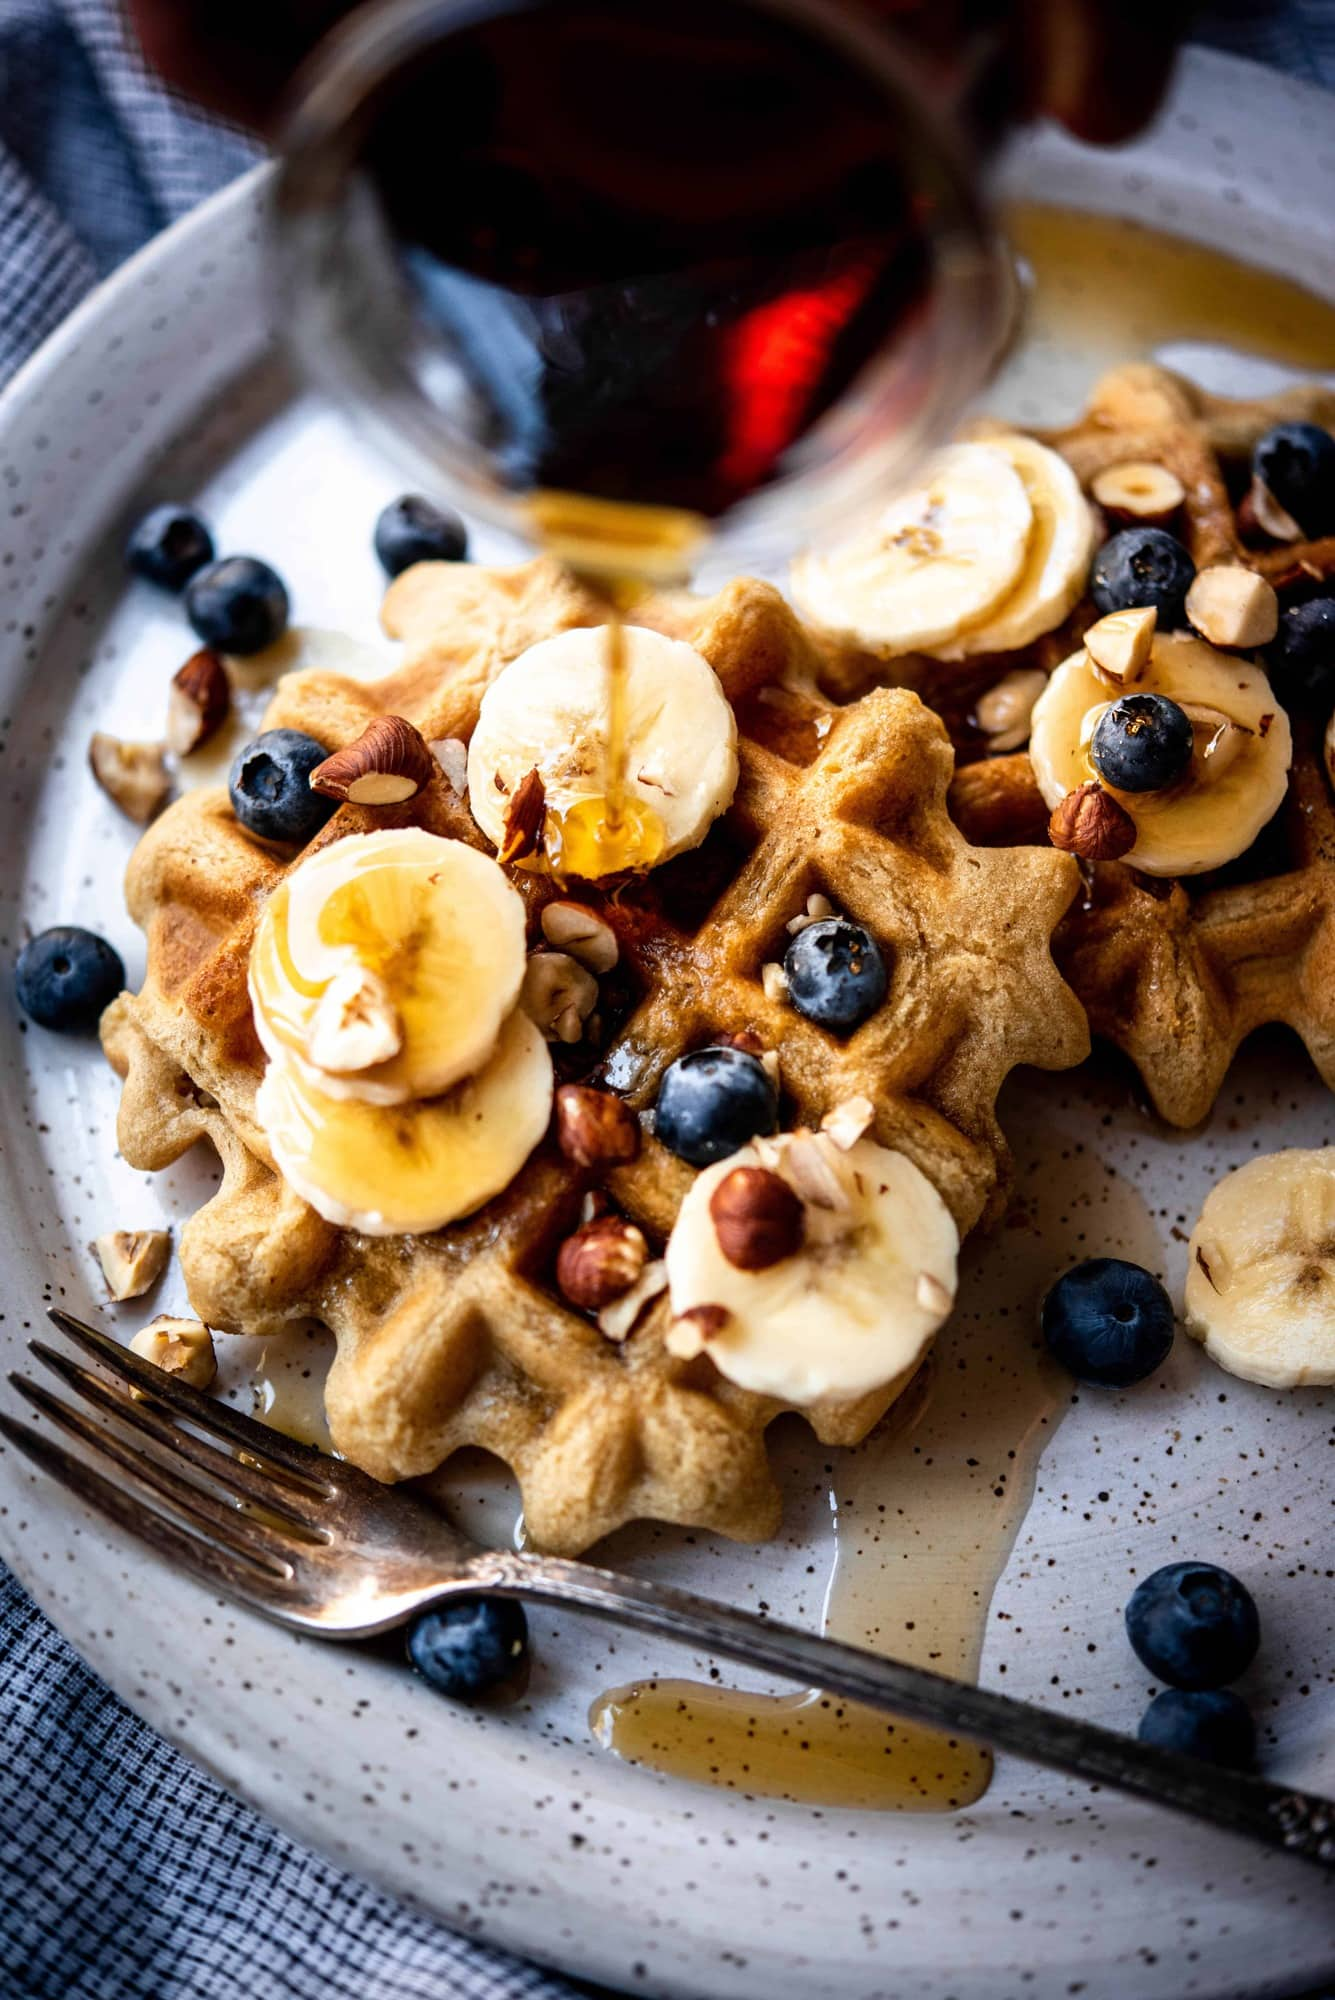 Close up view of pouring maple syrup on waffles topped with bananas and blueberries